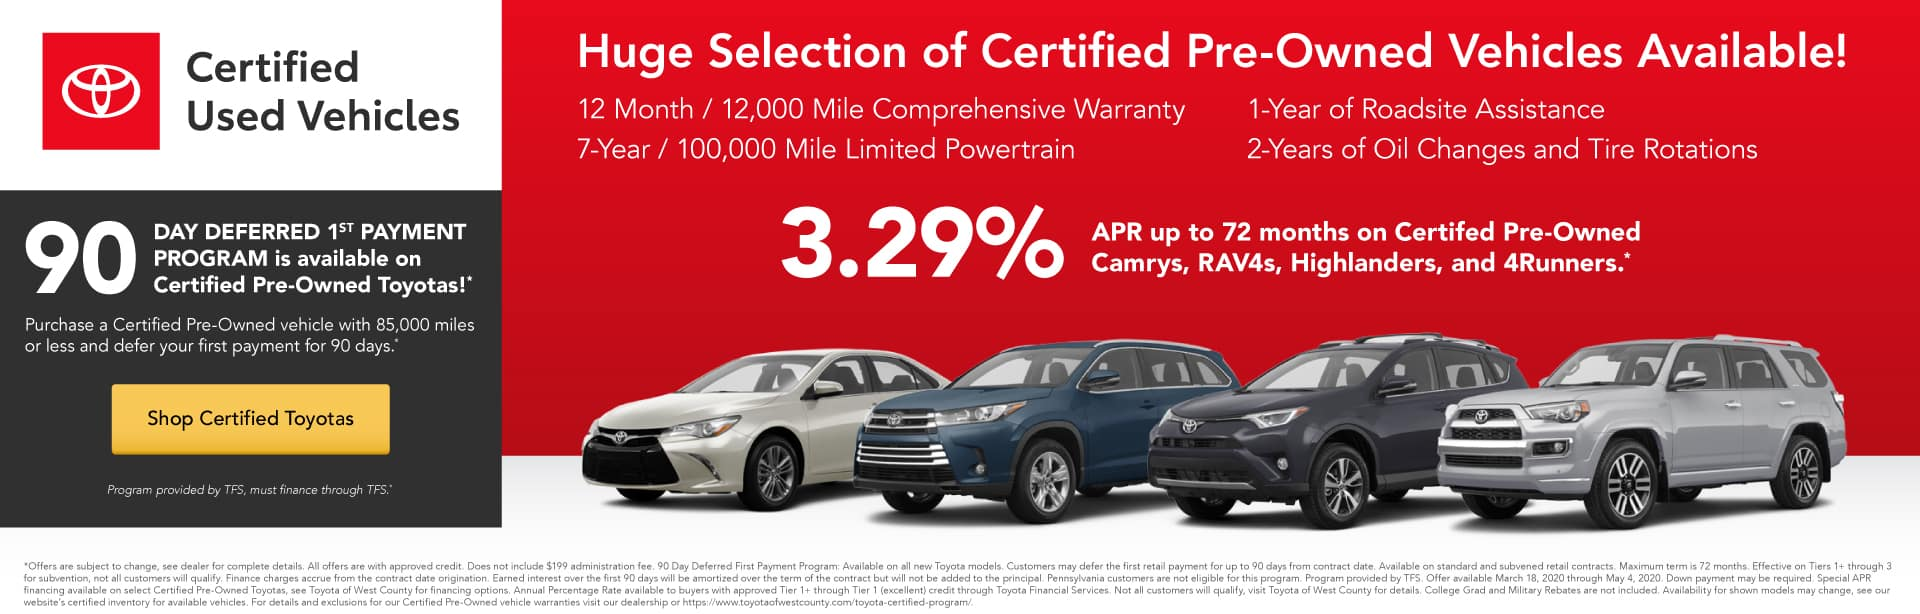 Huge Selection of Certified Pre-Owned Vehicles Available